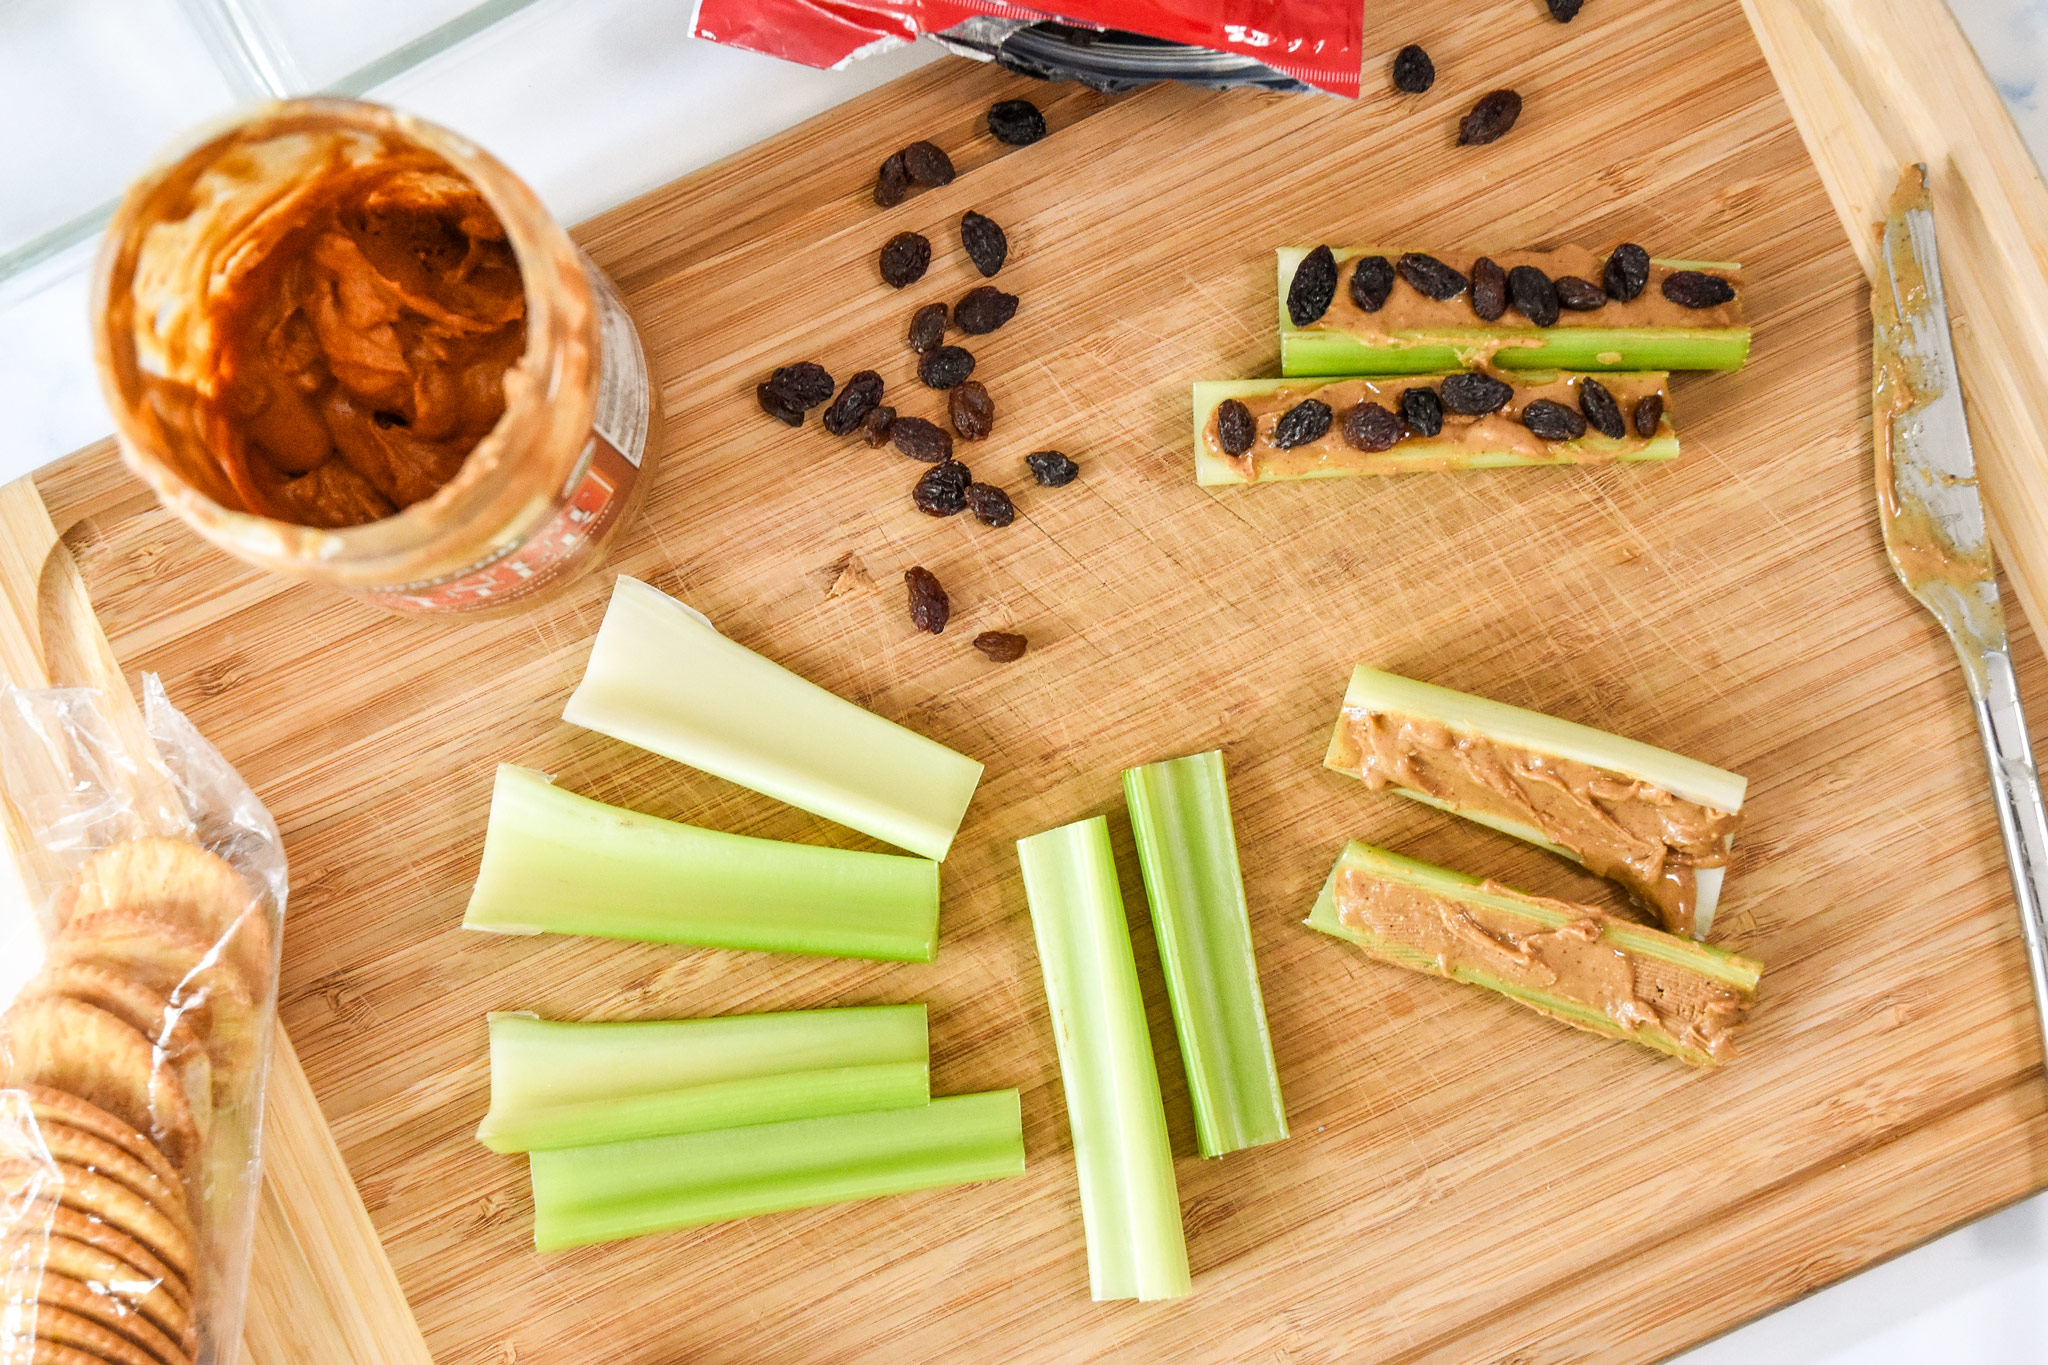 assembling ants on a log with celery, peanut butter and raisins on a cutting board.